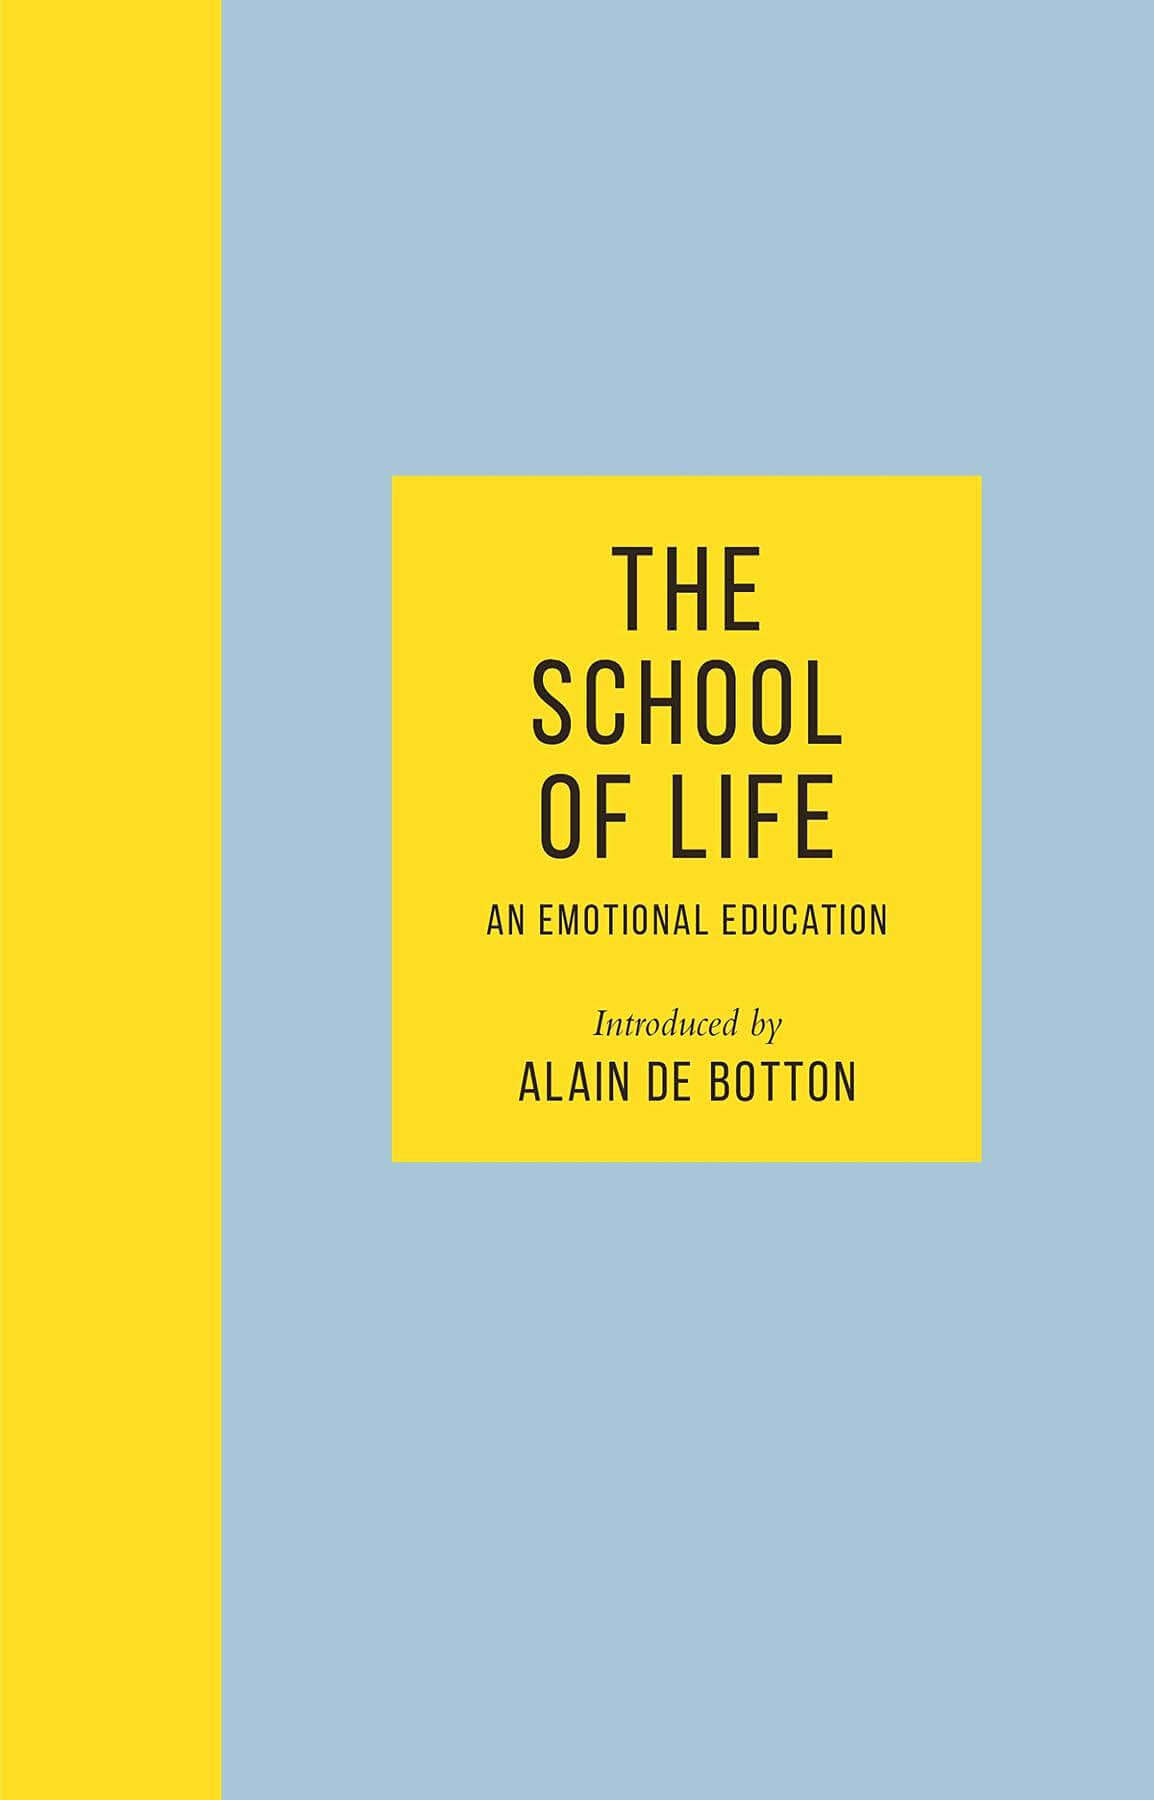 The School of Life: An Emotional Education, introduced by Alain de Botton